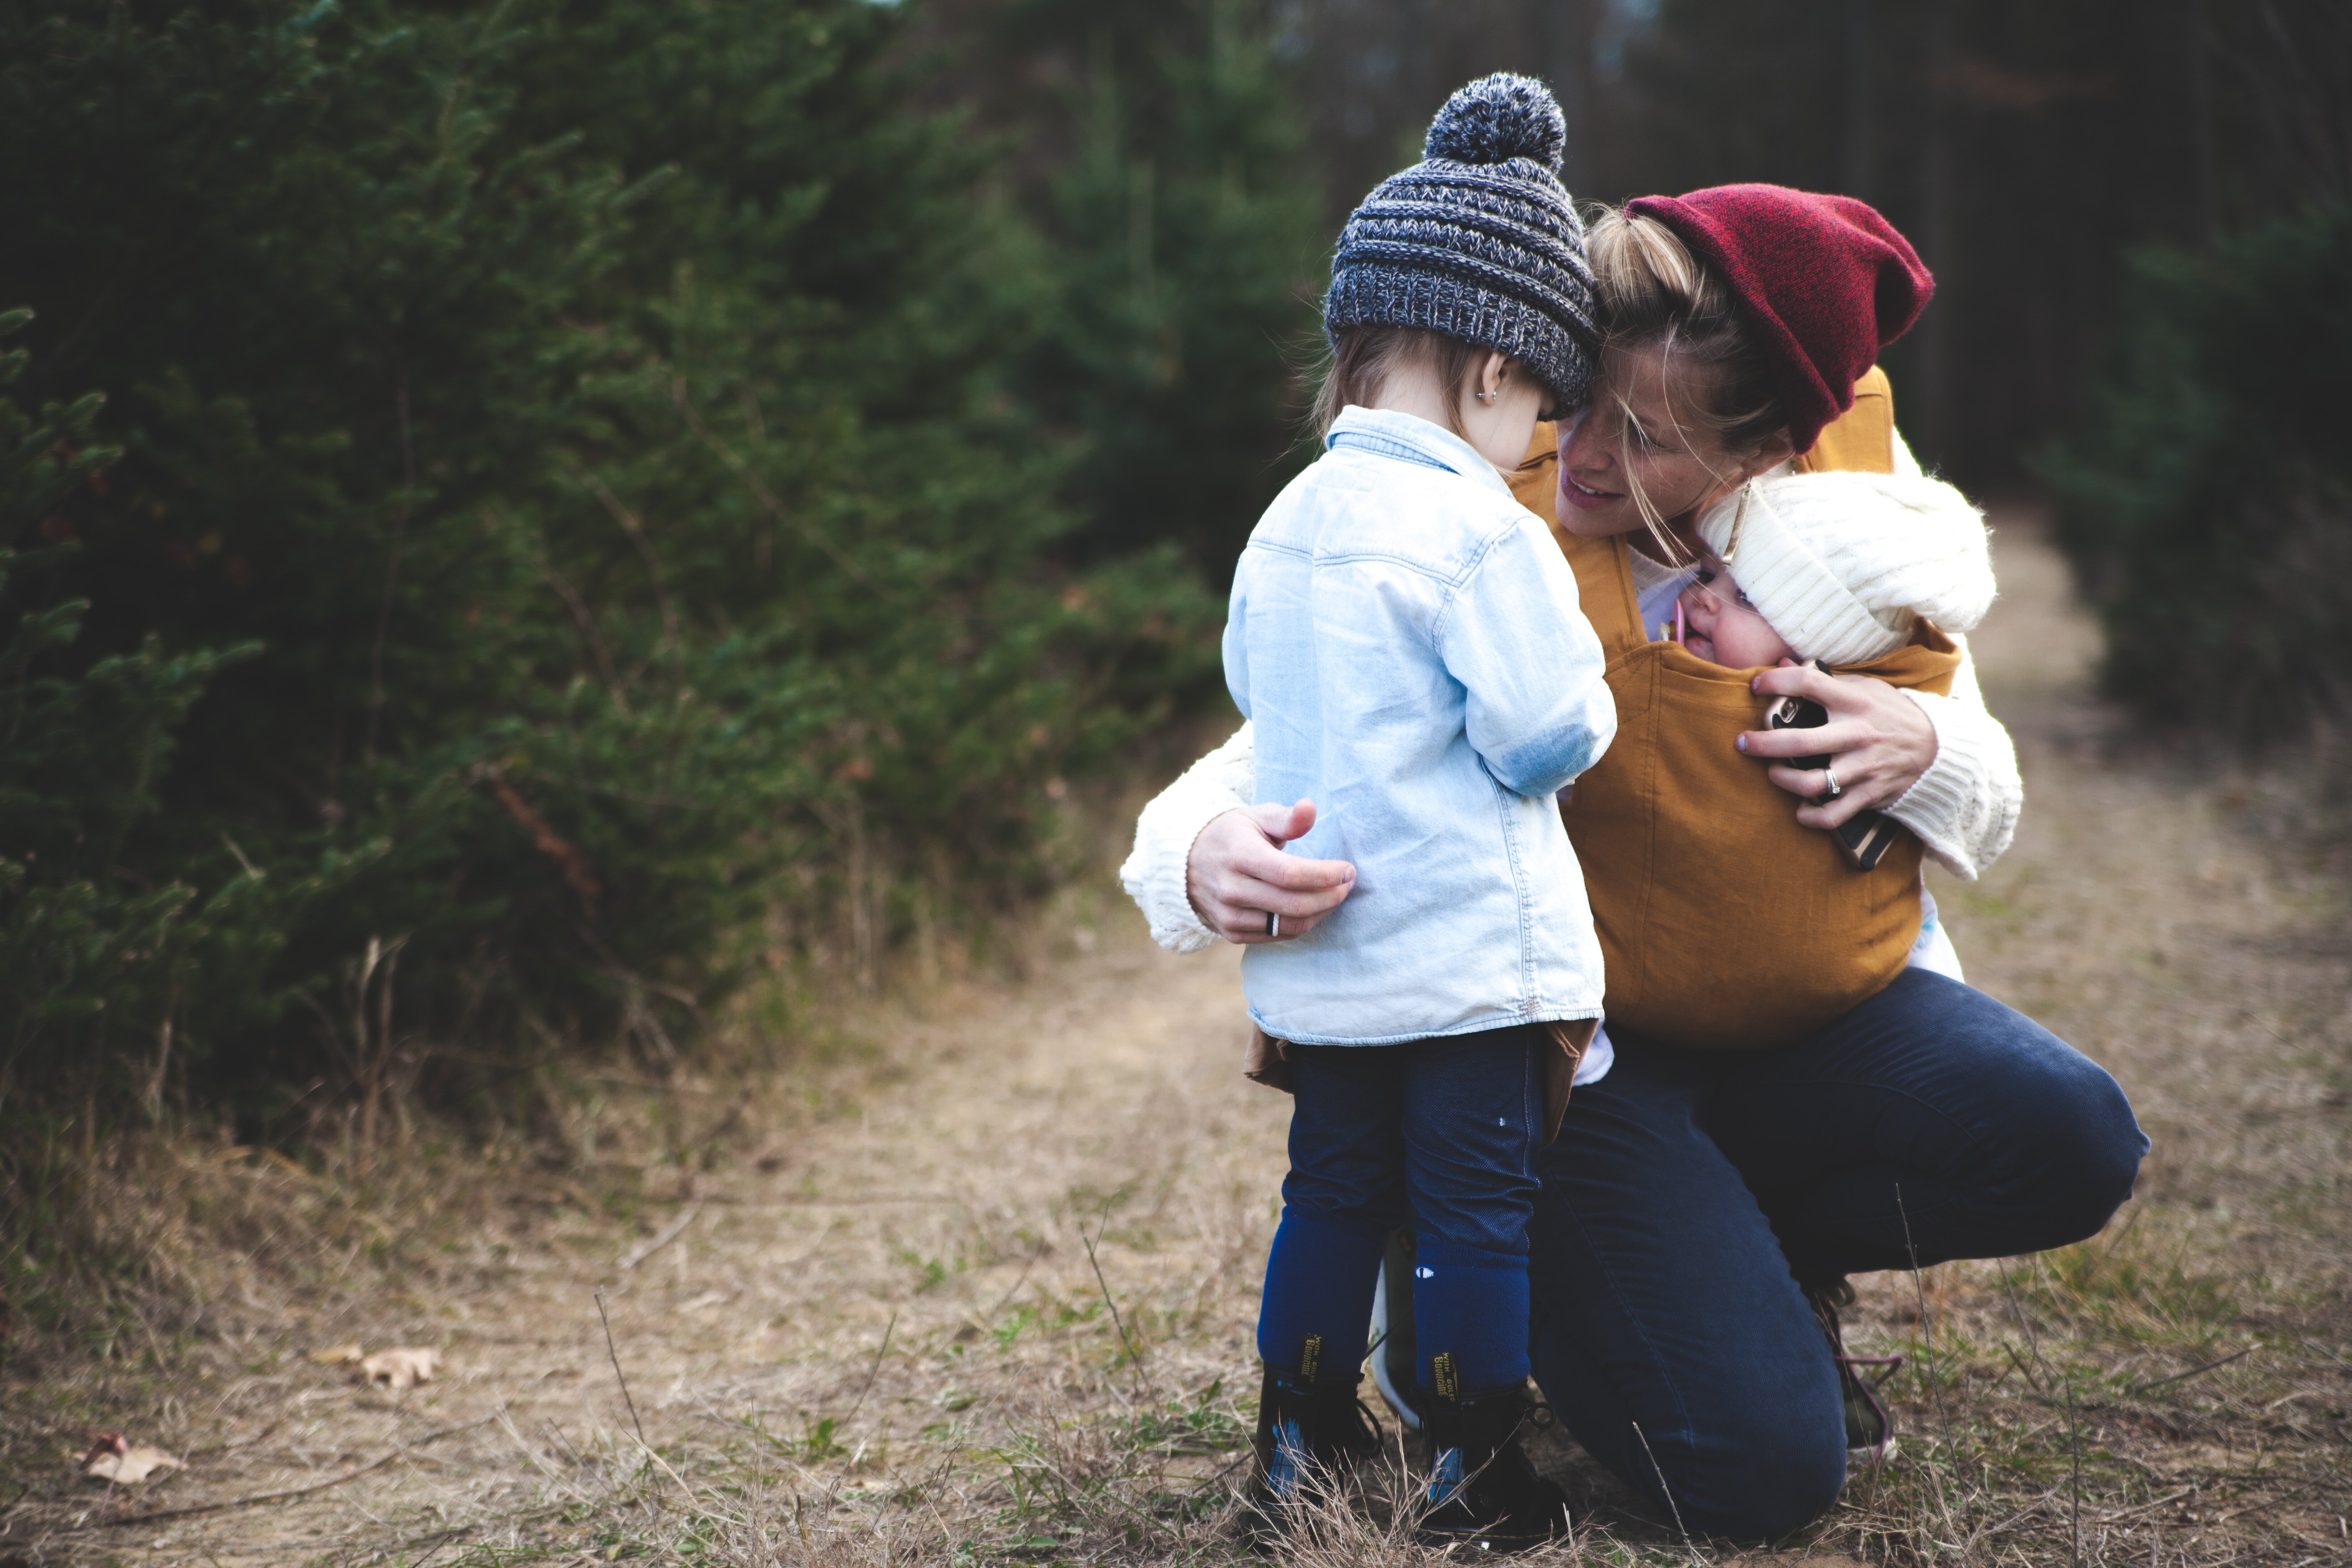 Talking to your preschool child is important for their development